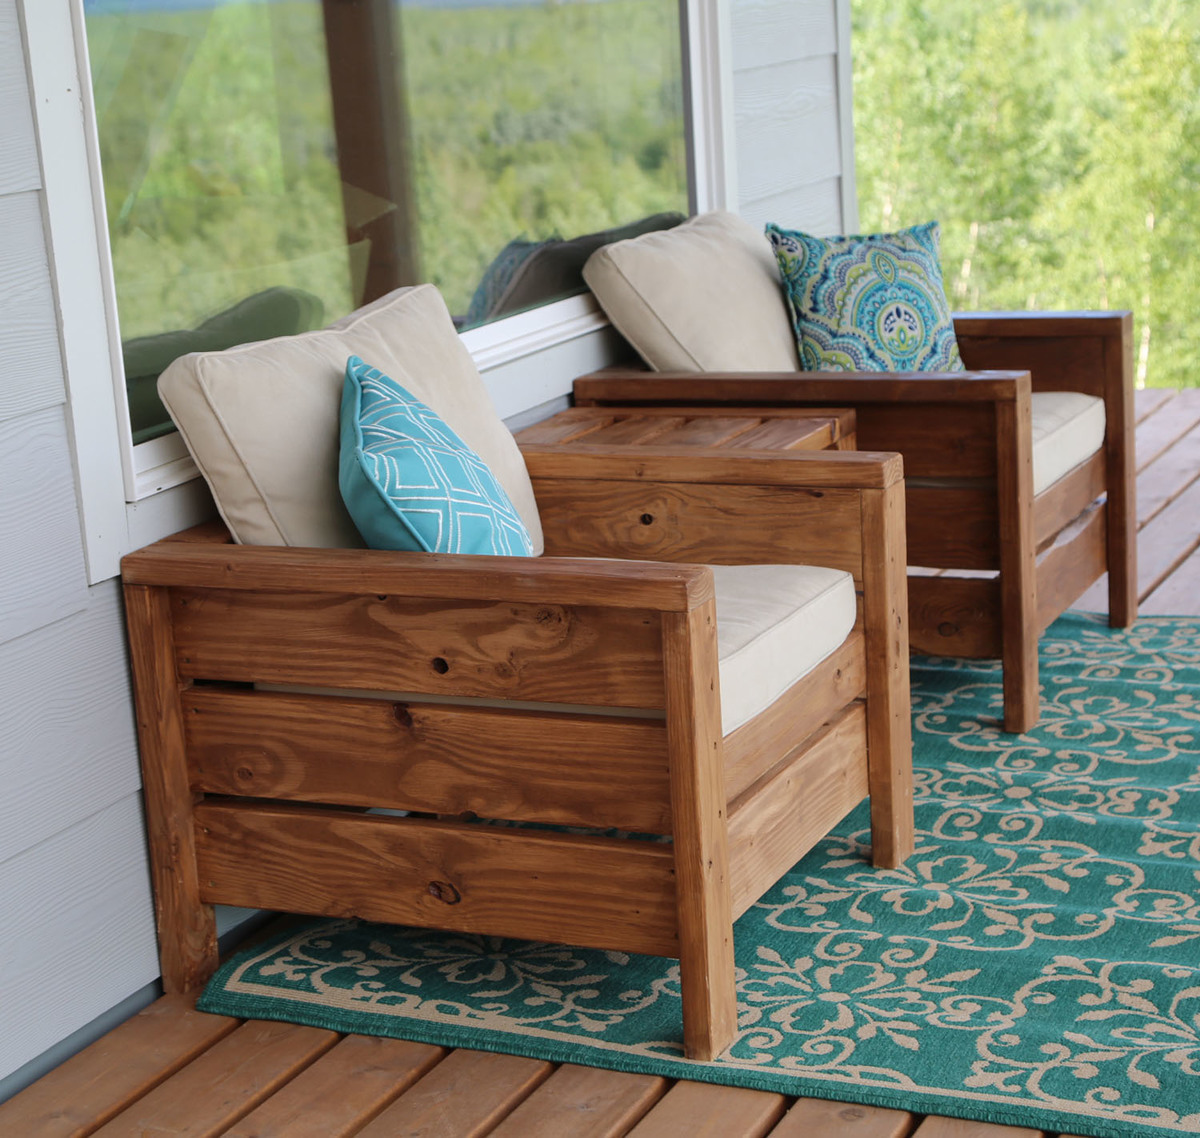 Easy to build sturdy modern outdoor chairs for deck or patio free plans by ana white com